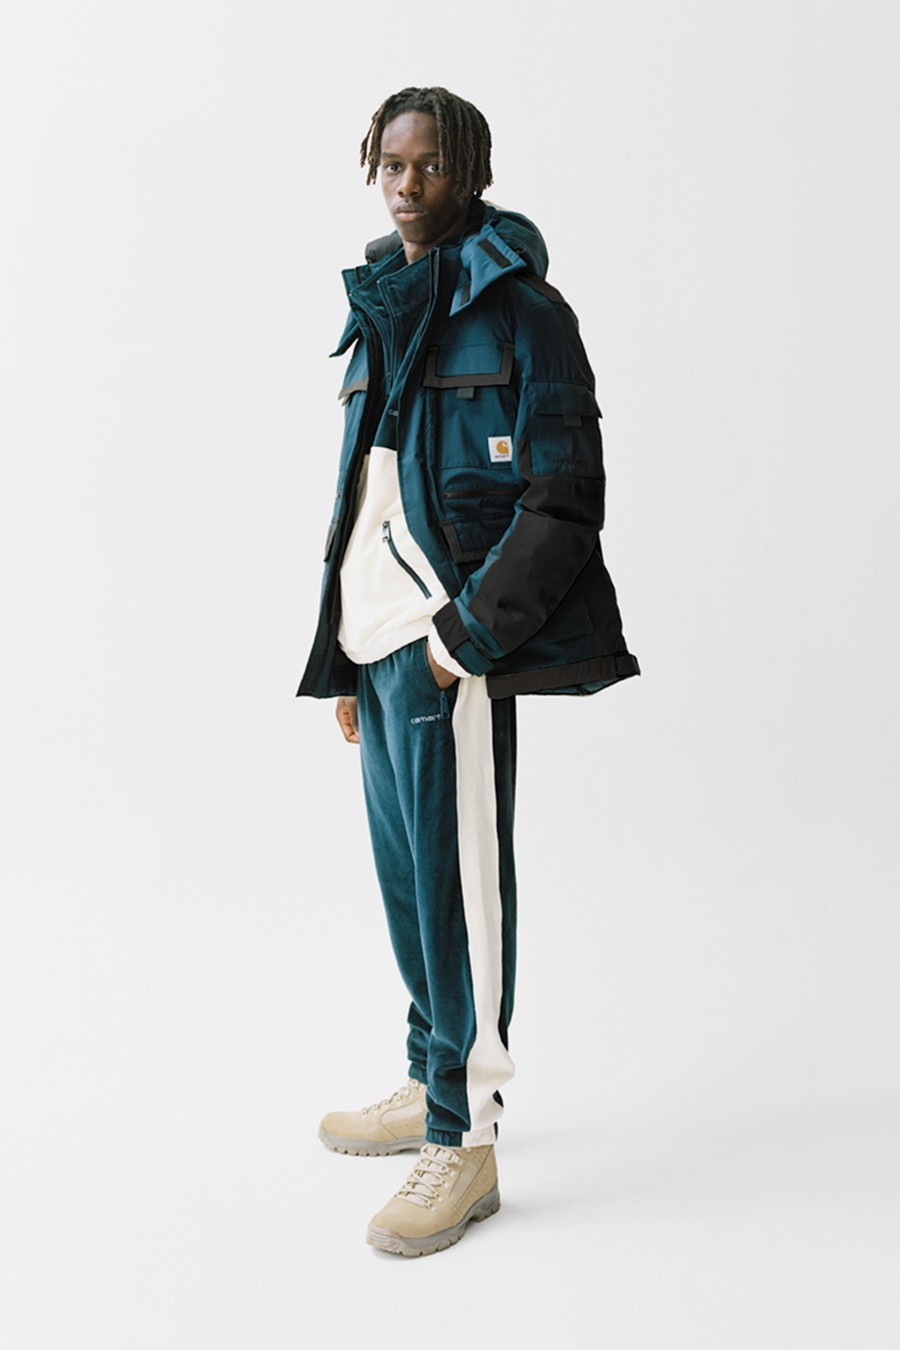 https3a2f2fhypebeast.com2fimage2f20192f082fcarhartt-wip-fw19-lookbook-017